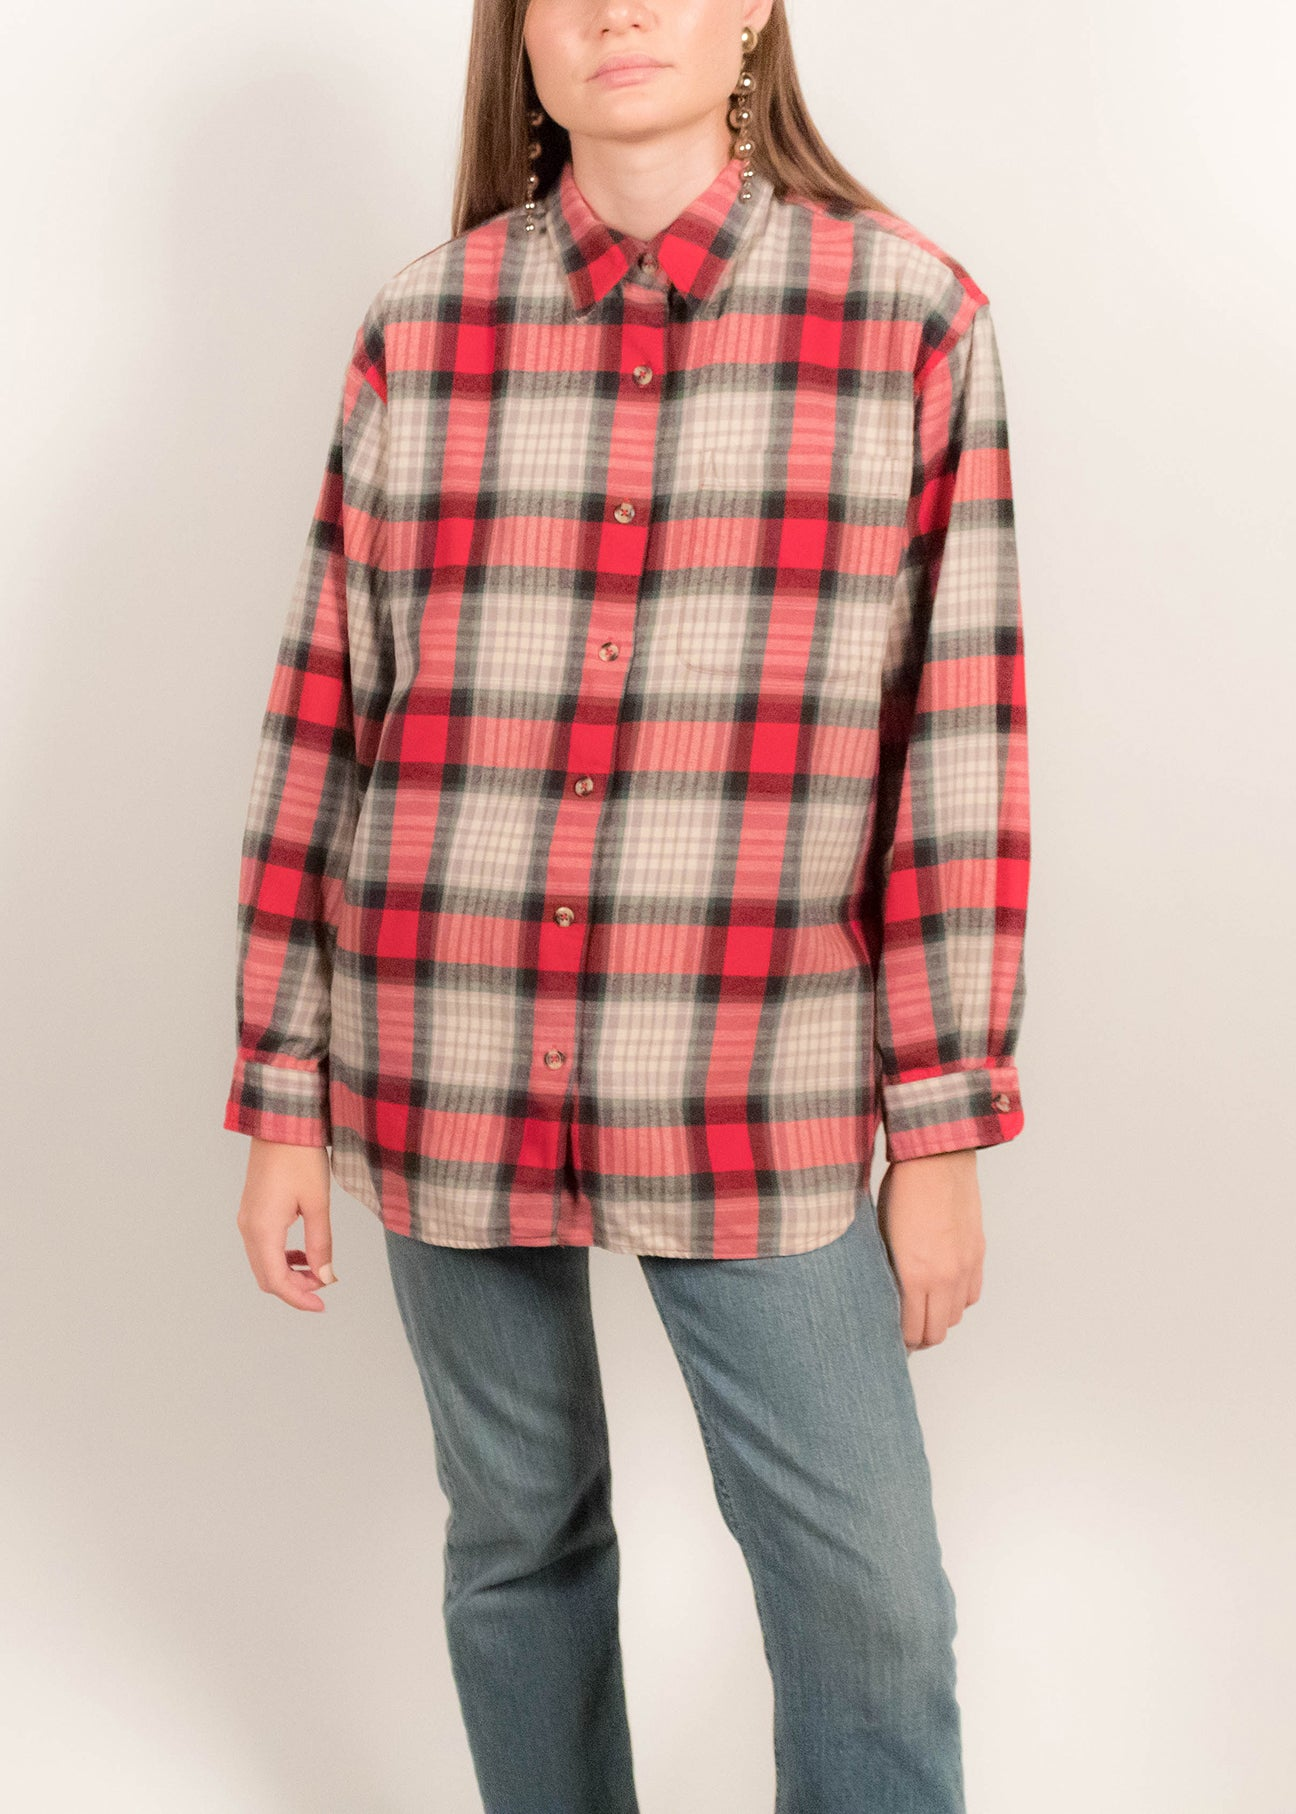 90s Cotton Plaid Overshirt